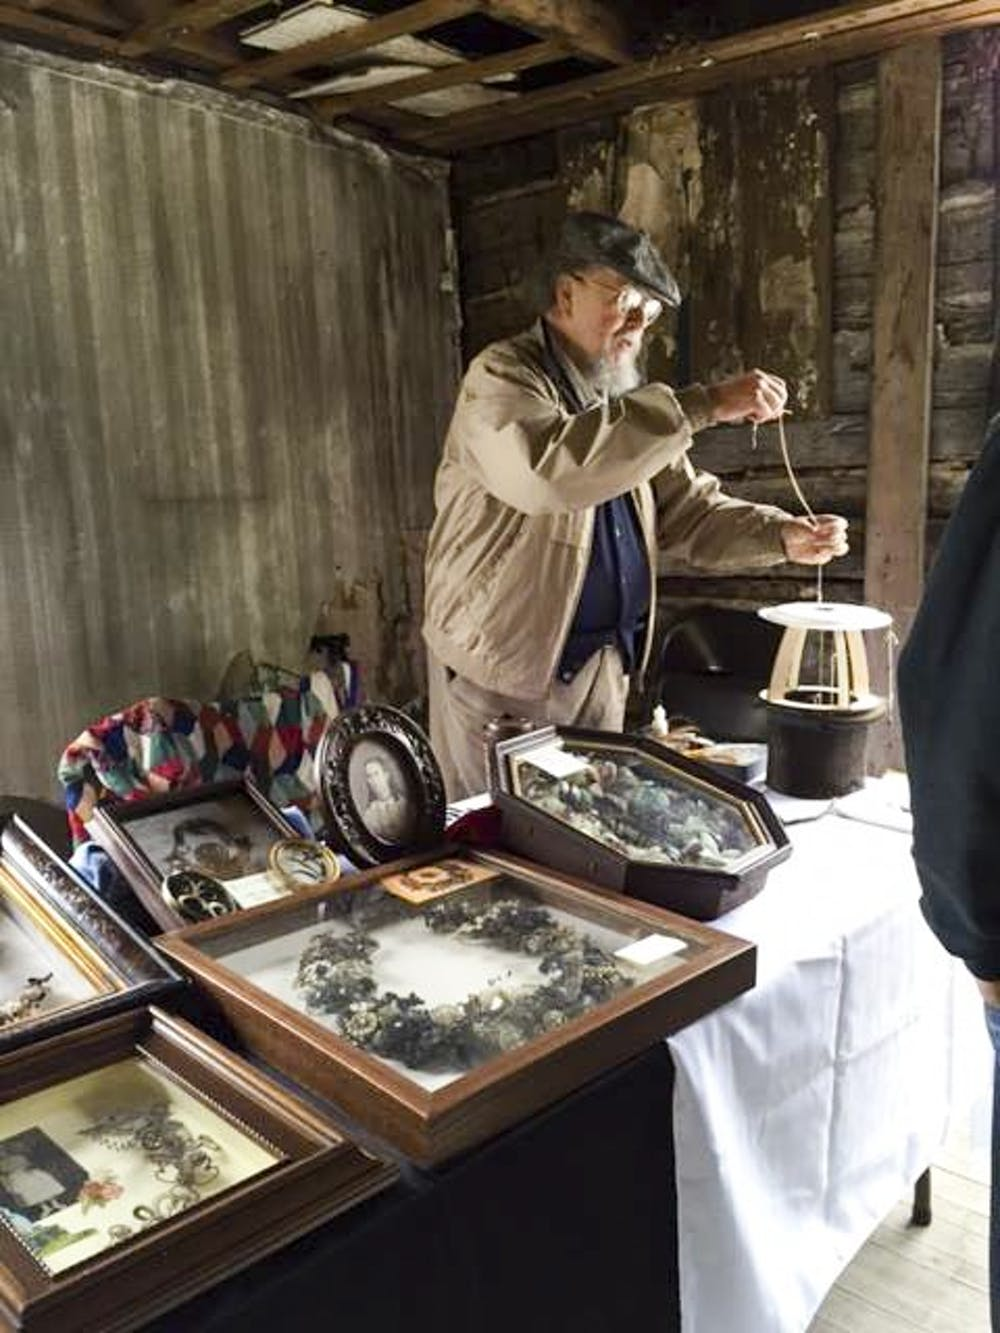 The Hillforest Victorian Museum in Aurora, Indiana, is on the day of the museum's celebration of Indiana's bicentennial.